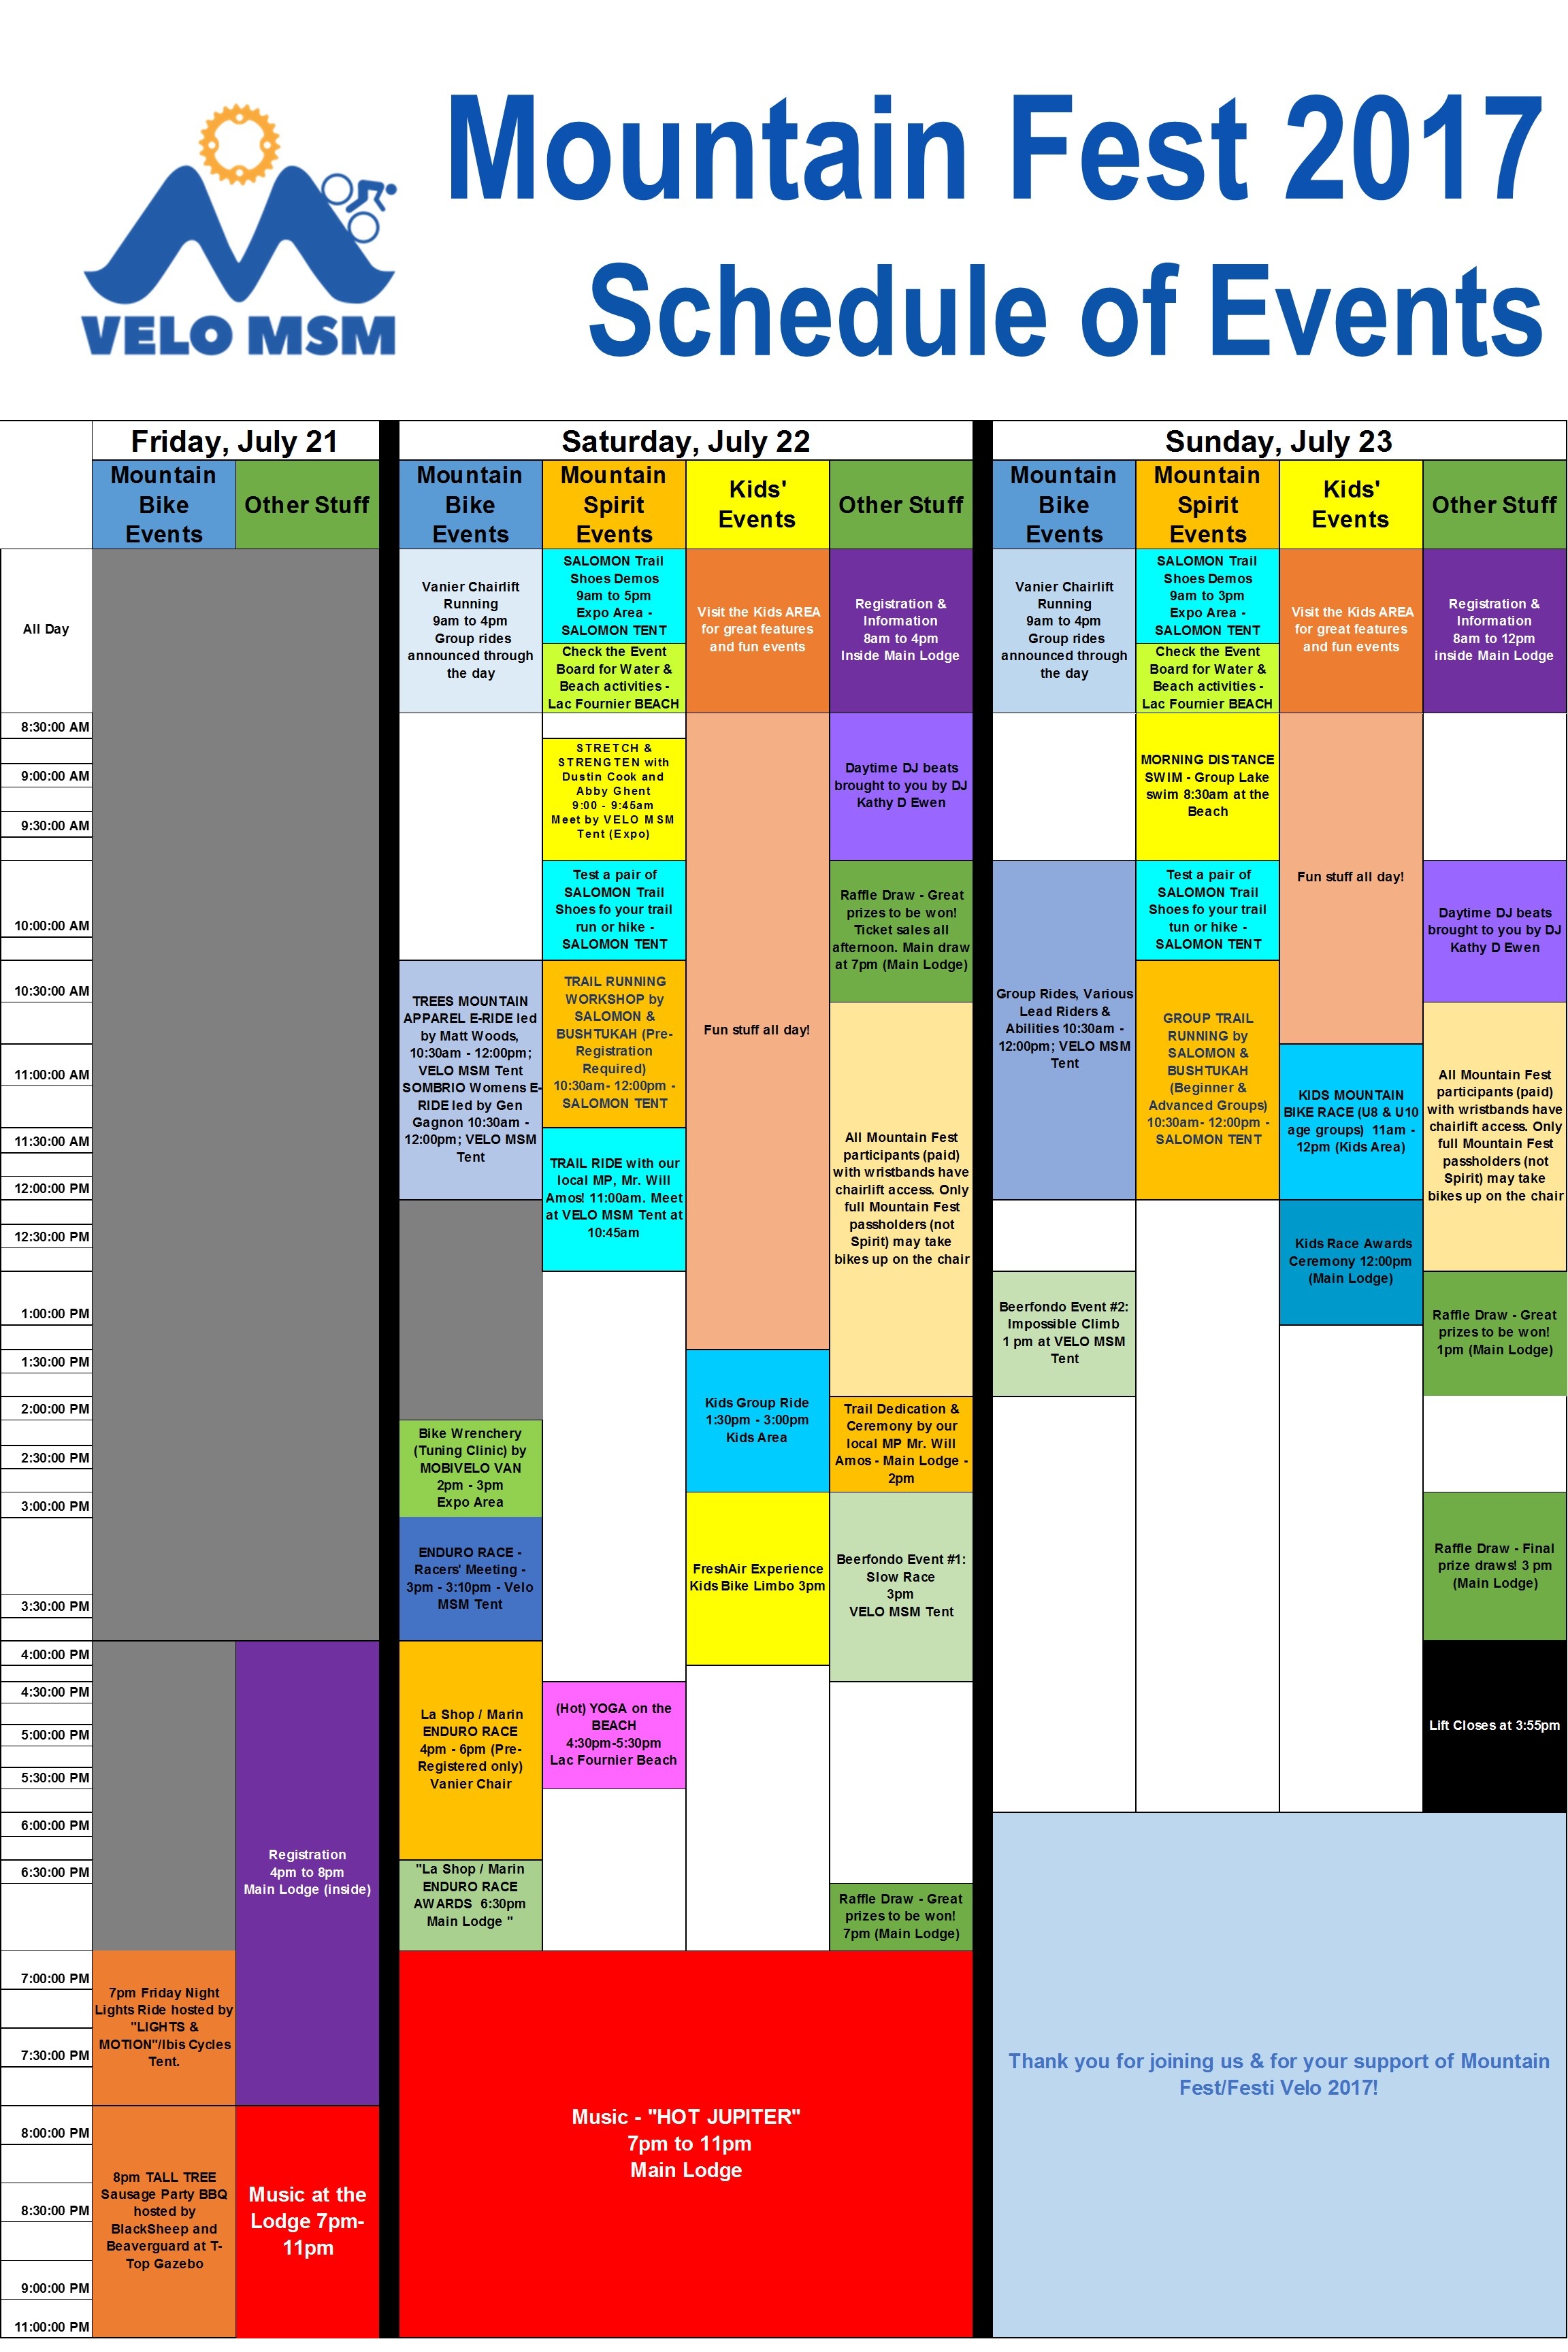 Schedule Available